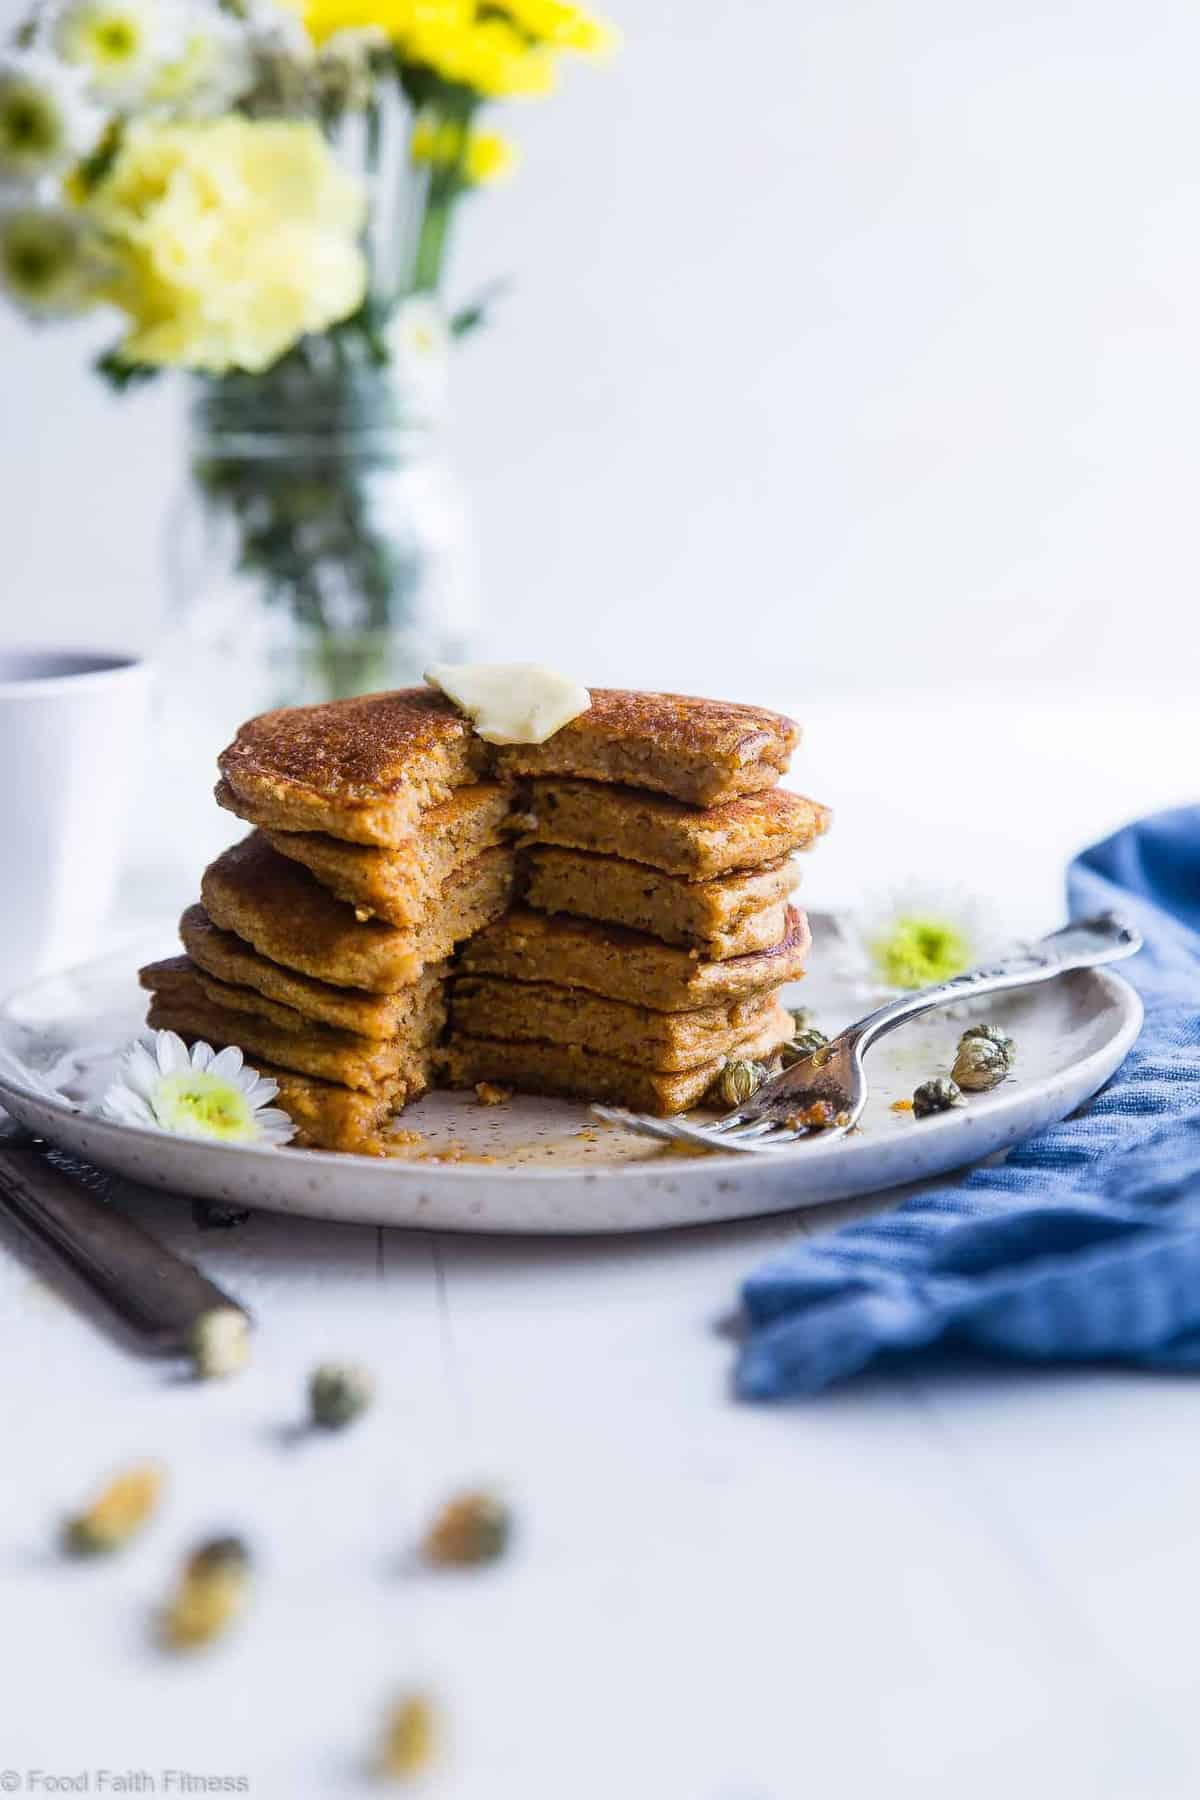 Healthy Gluten Free Paleo Sweet Potato Pancakes - SO fluffy and tender that you won't believe they're made without butter or oil! Perfect for a healthy breakfast and freezes great for busy mornings! | #Foodfaithfitness | #Glutenfree #Paleo #Healthy #Dairyfree #Pancakes